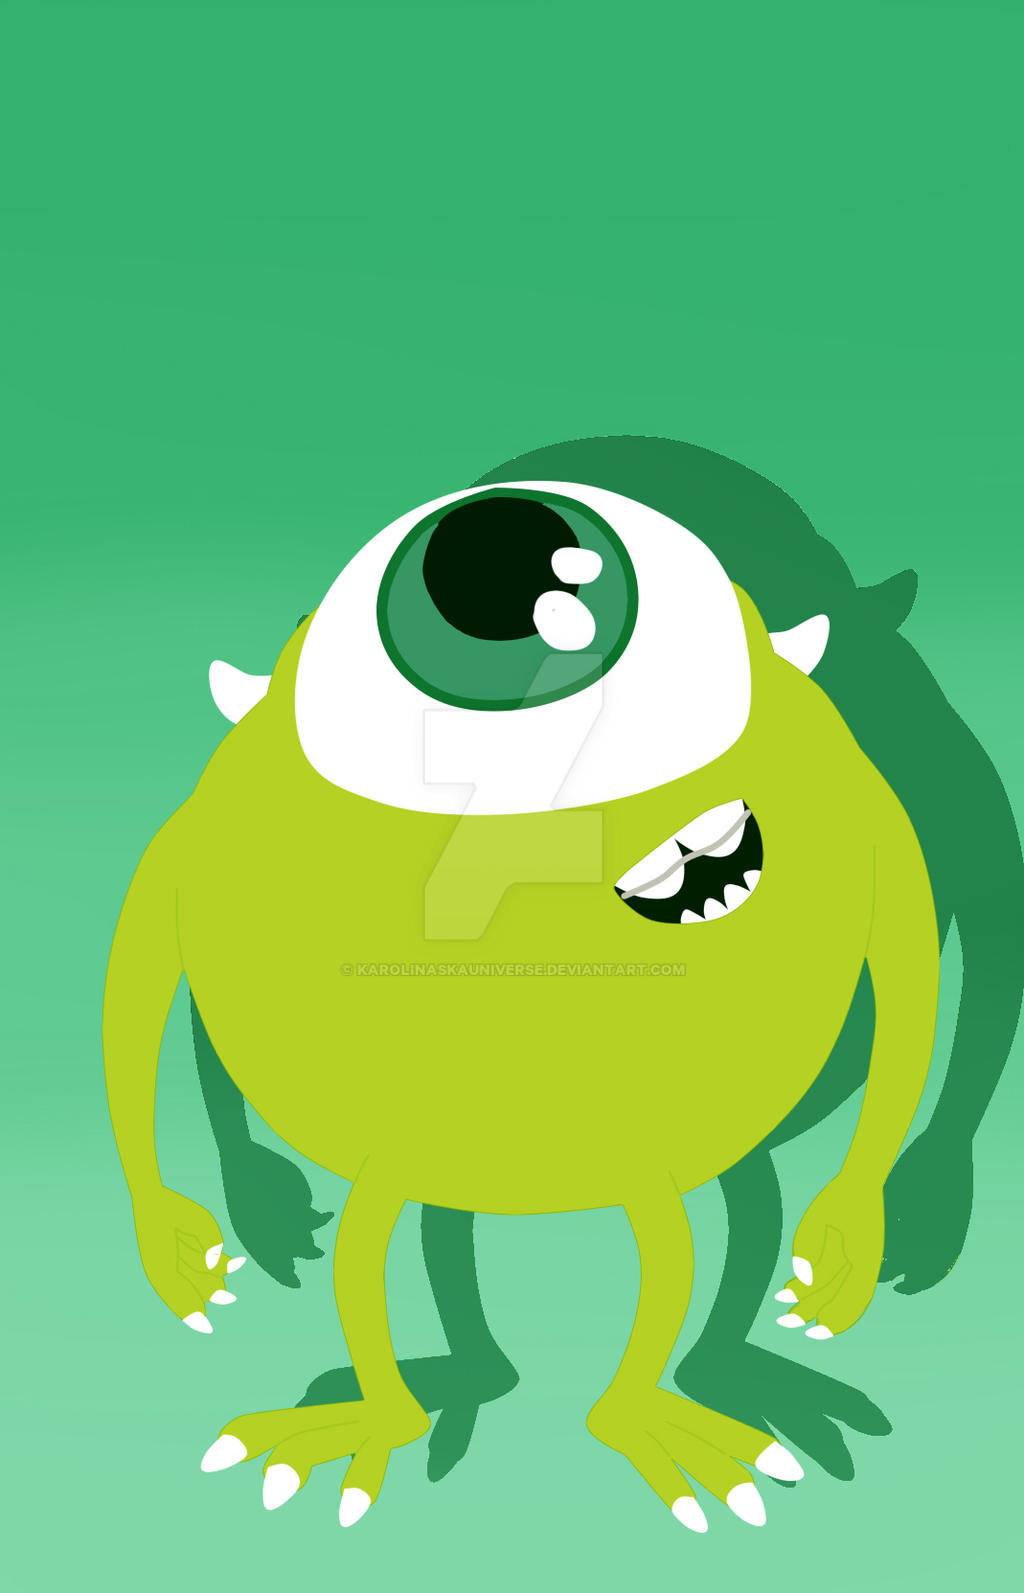 Mike Wazowski Wallpaper | www.pixshark.com - Images ...